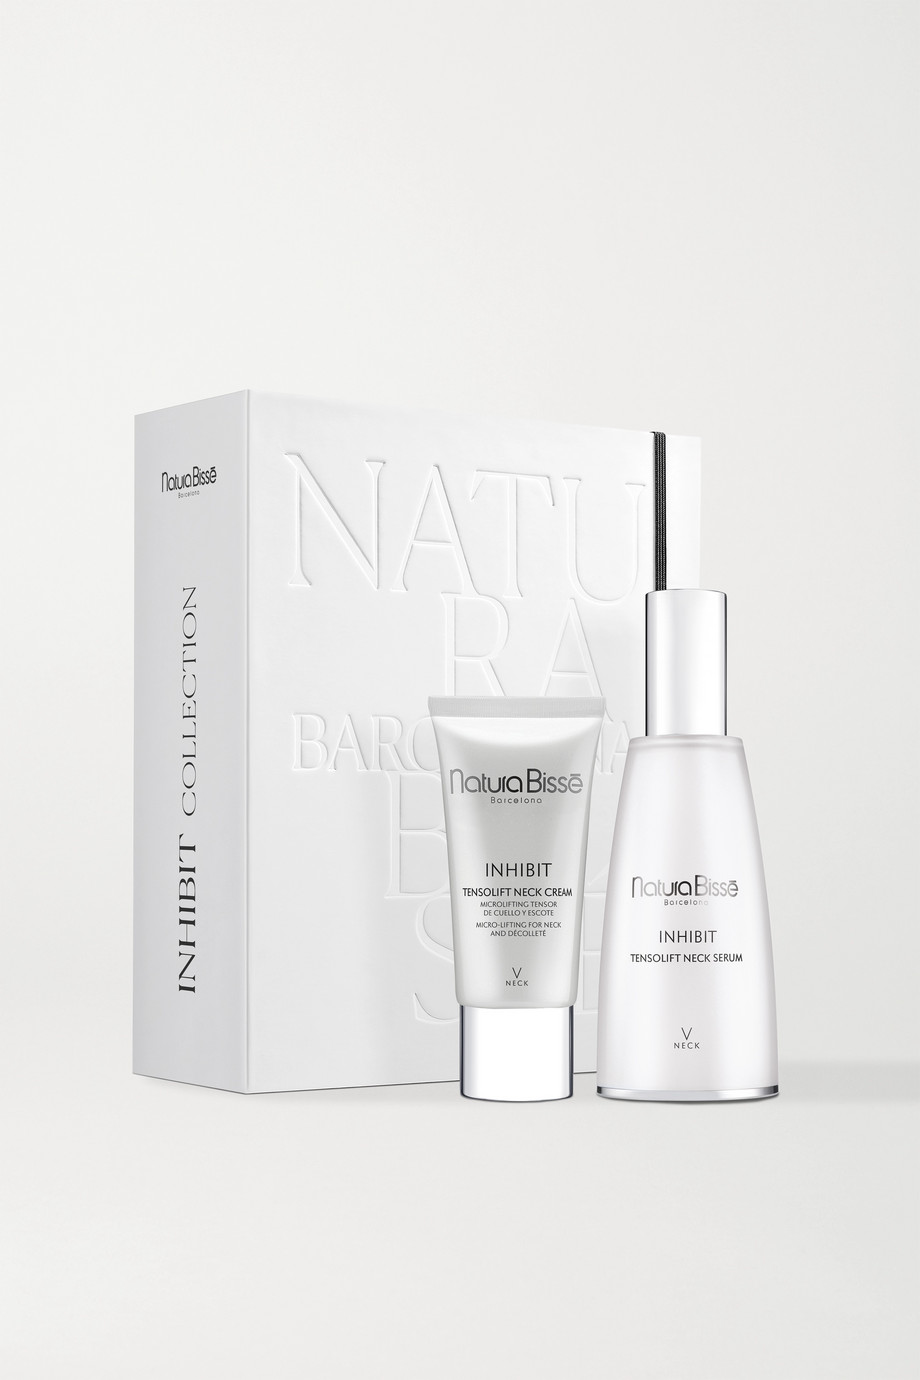 Natura Bissé Inhibit Duo